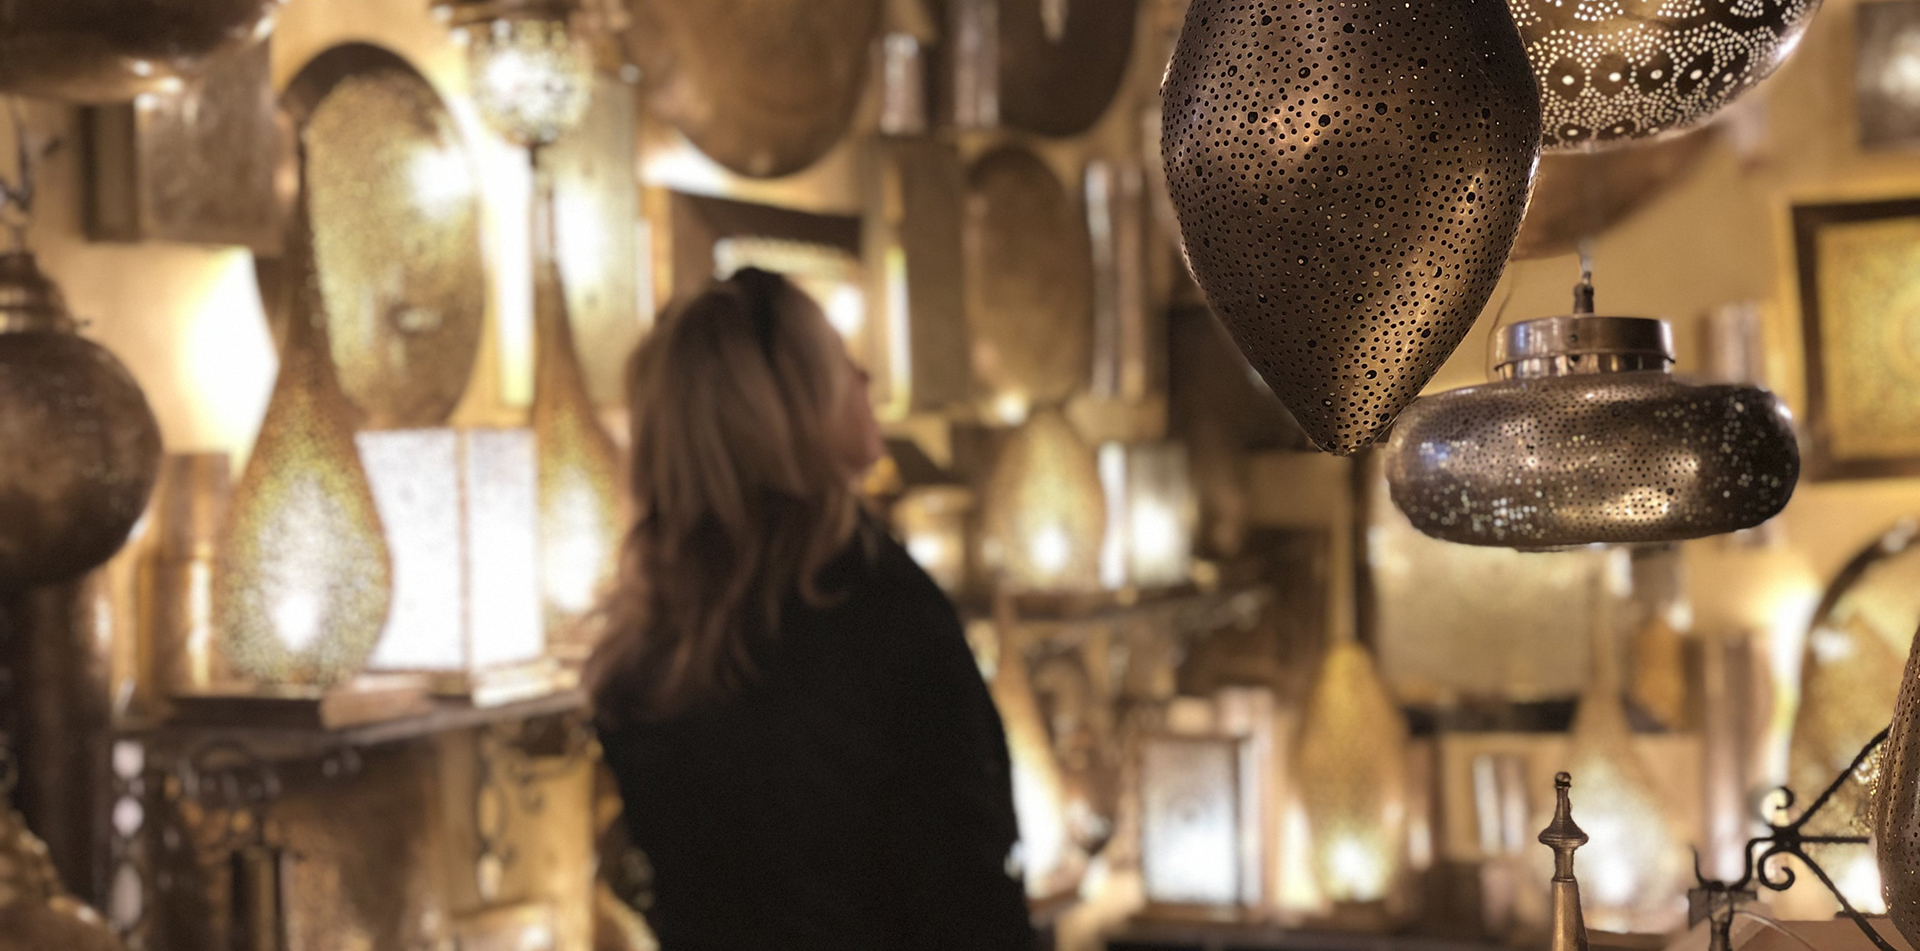 Africa Morocco woman looking at traditional brightly lit decorative lanterns in souk - luxury vacation destinations